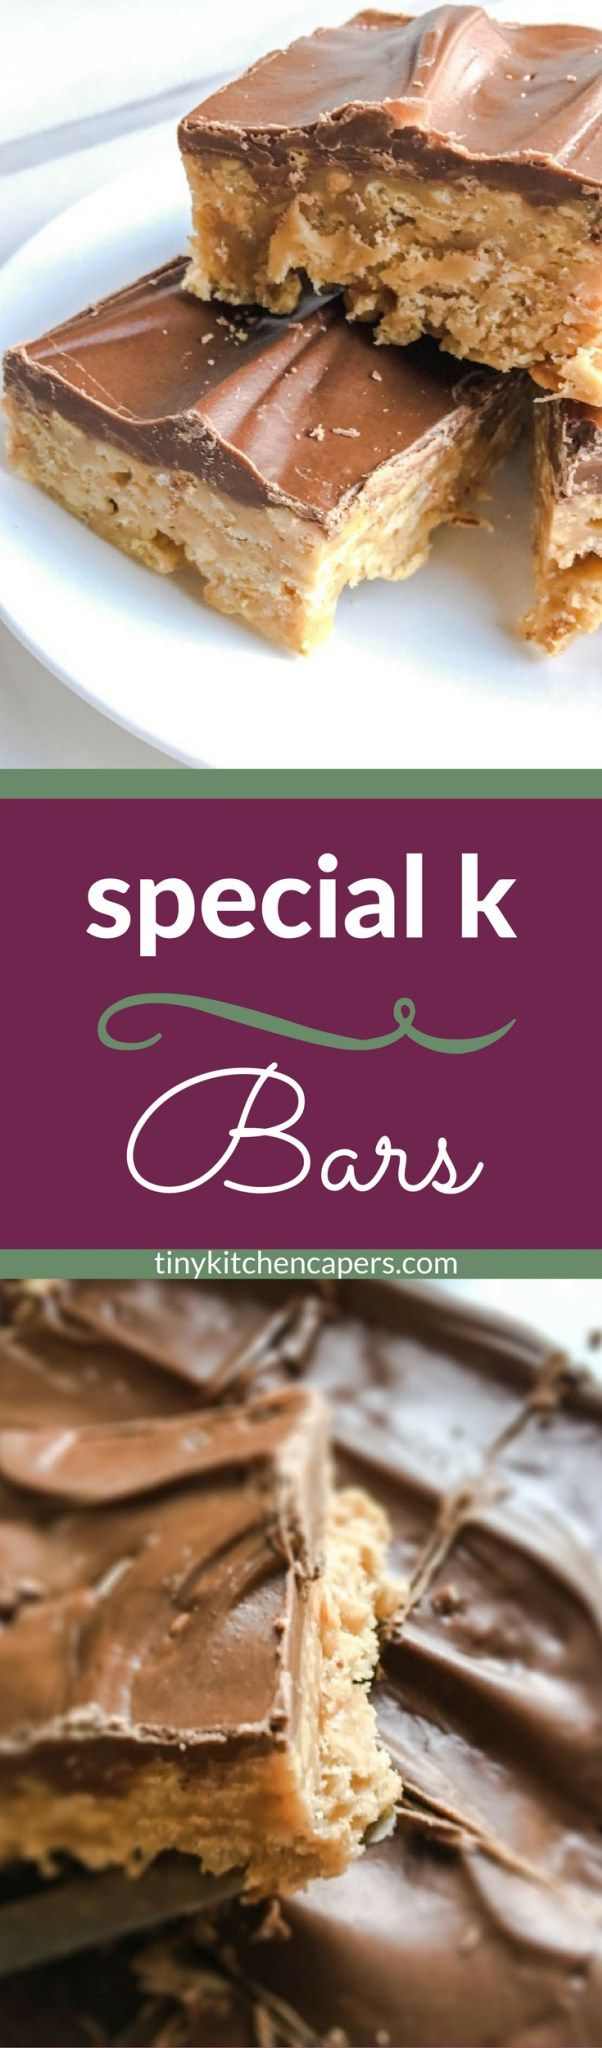 Special K Bars; easy, no-bake cookie bars made with chocolate, peanut butter, butterscotch, and Special K cereal | tinykitchencapers.com